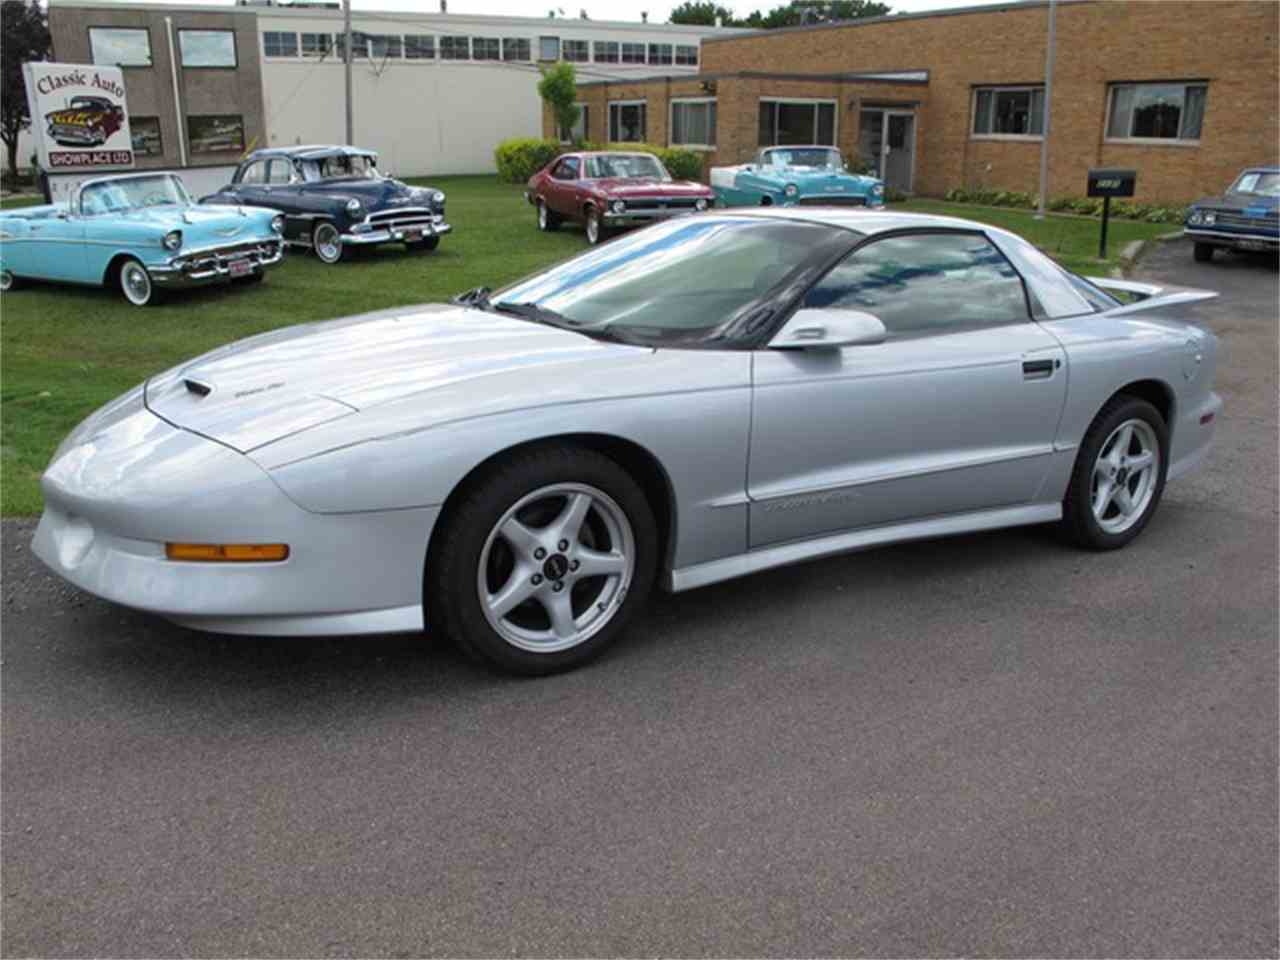 Large Picture of 1996 Pontiac Firebird Trans Am located in Michigan - $10,900.00 Offered by Classic Auto Showplace - JPQ5